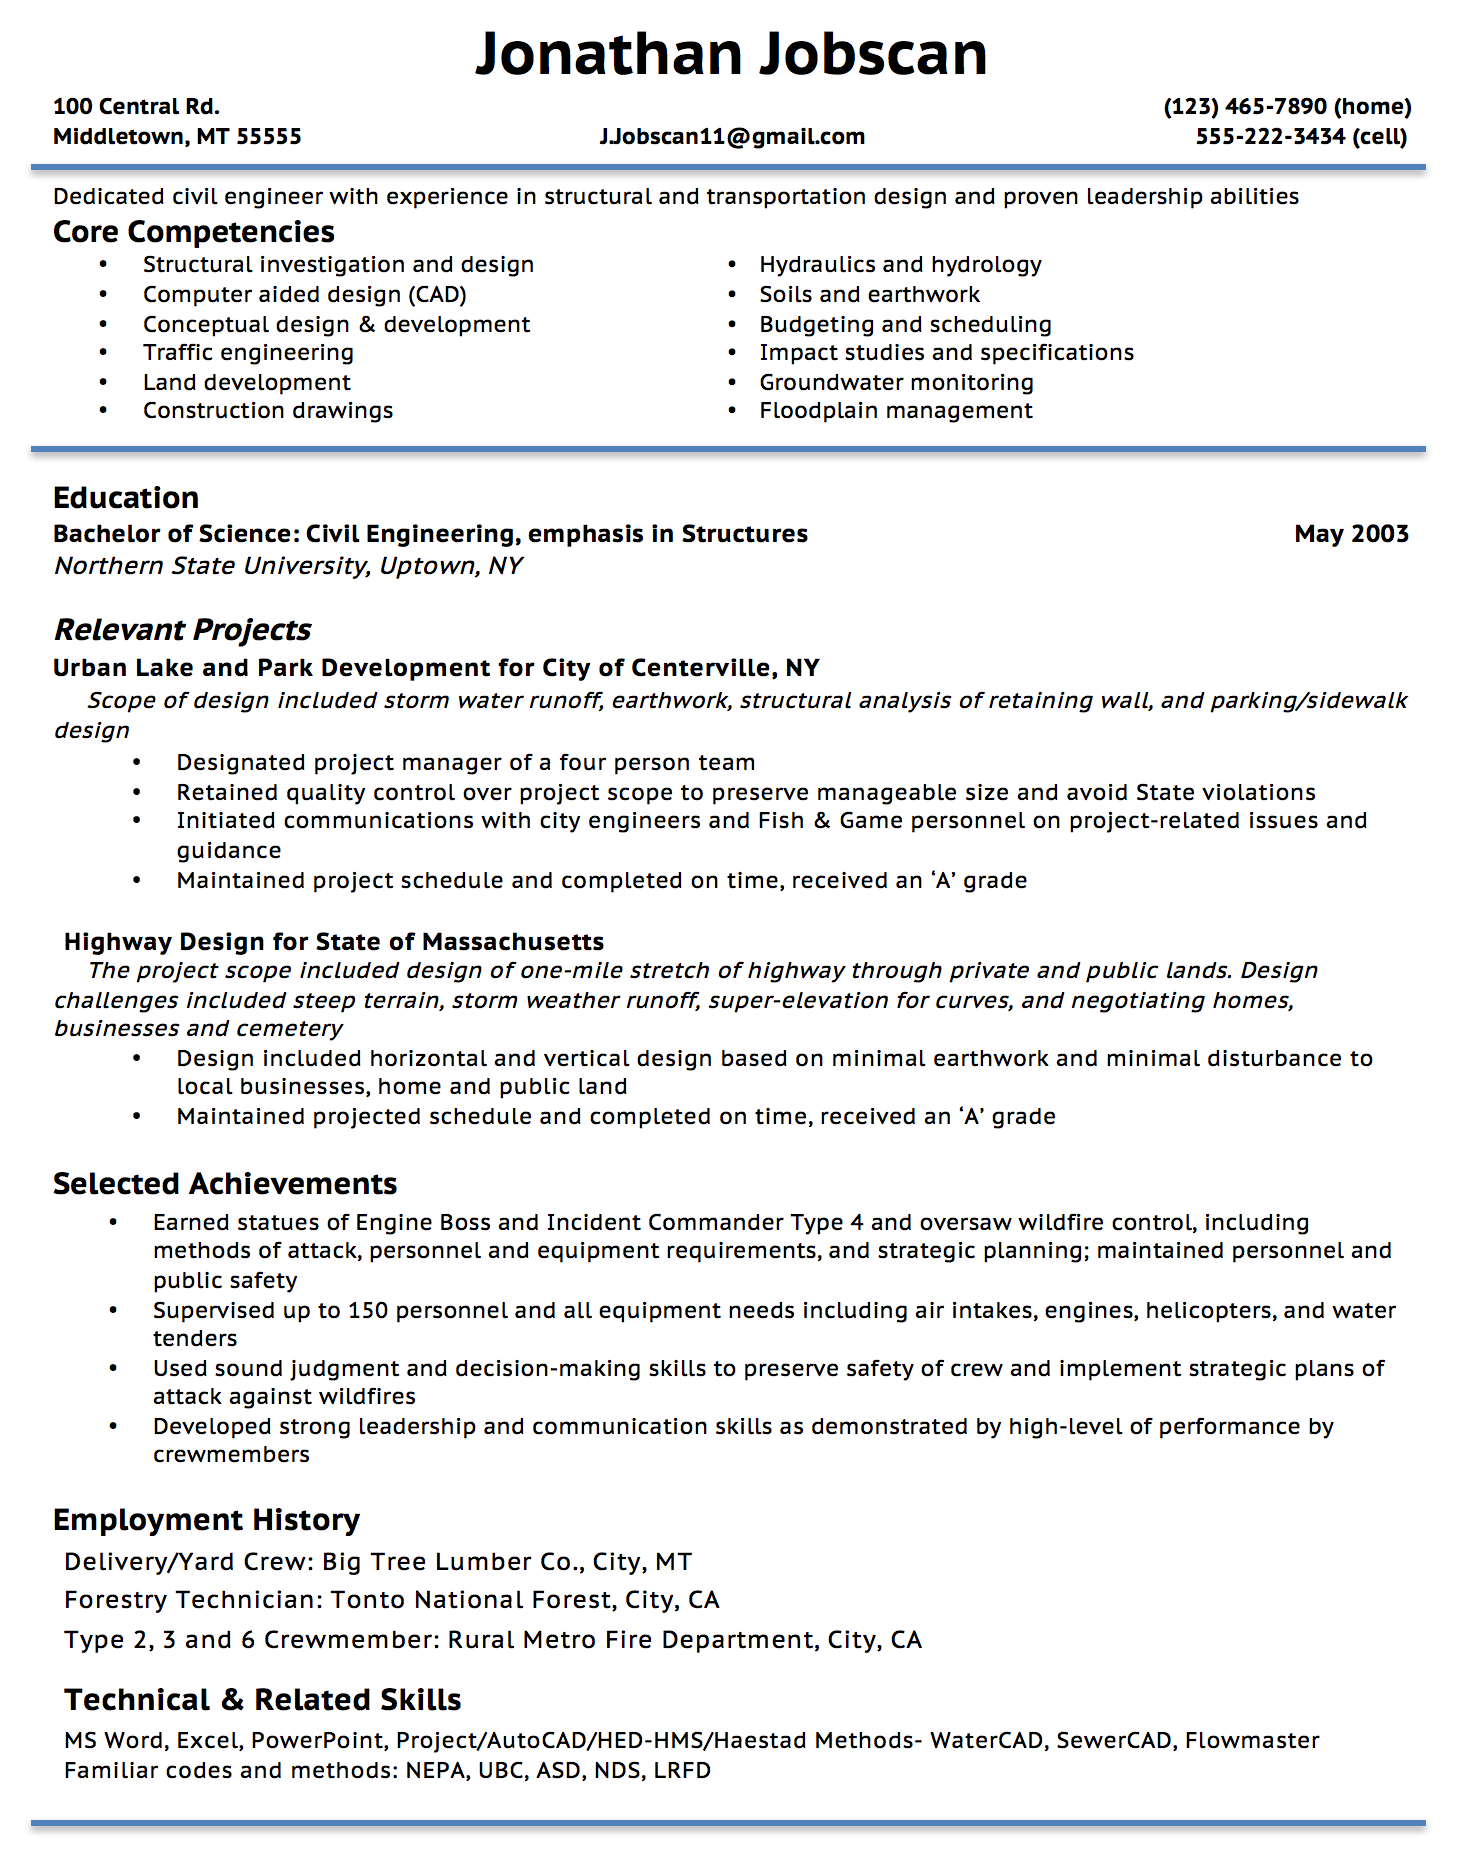 Opposenewapstandardsus  Surprising Resume Writing Guide  Jobscan With Remarkable Example Of A Functional Resume Format With Agreeable Easy Resumes Also Correct Resume Format In Addition Active Words For Resume And Template Of Resume As Well As Receptionist Sample Resume Additionally Serving Resume From Jobscanco With Opposenewapstandardsus  Remarkable Resume Writing Guide  Jobscan With Agreeable Example Of A Functional Resume Format And Surprising Easy Resumes Also Correct Resume Format In Addition Active Words For Resume From Jobscanco